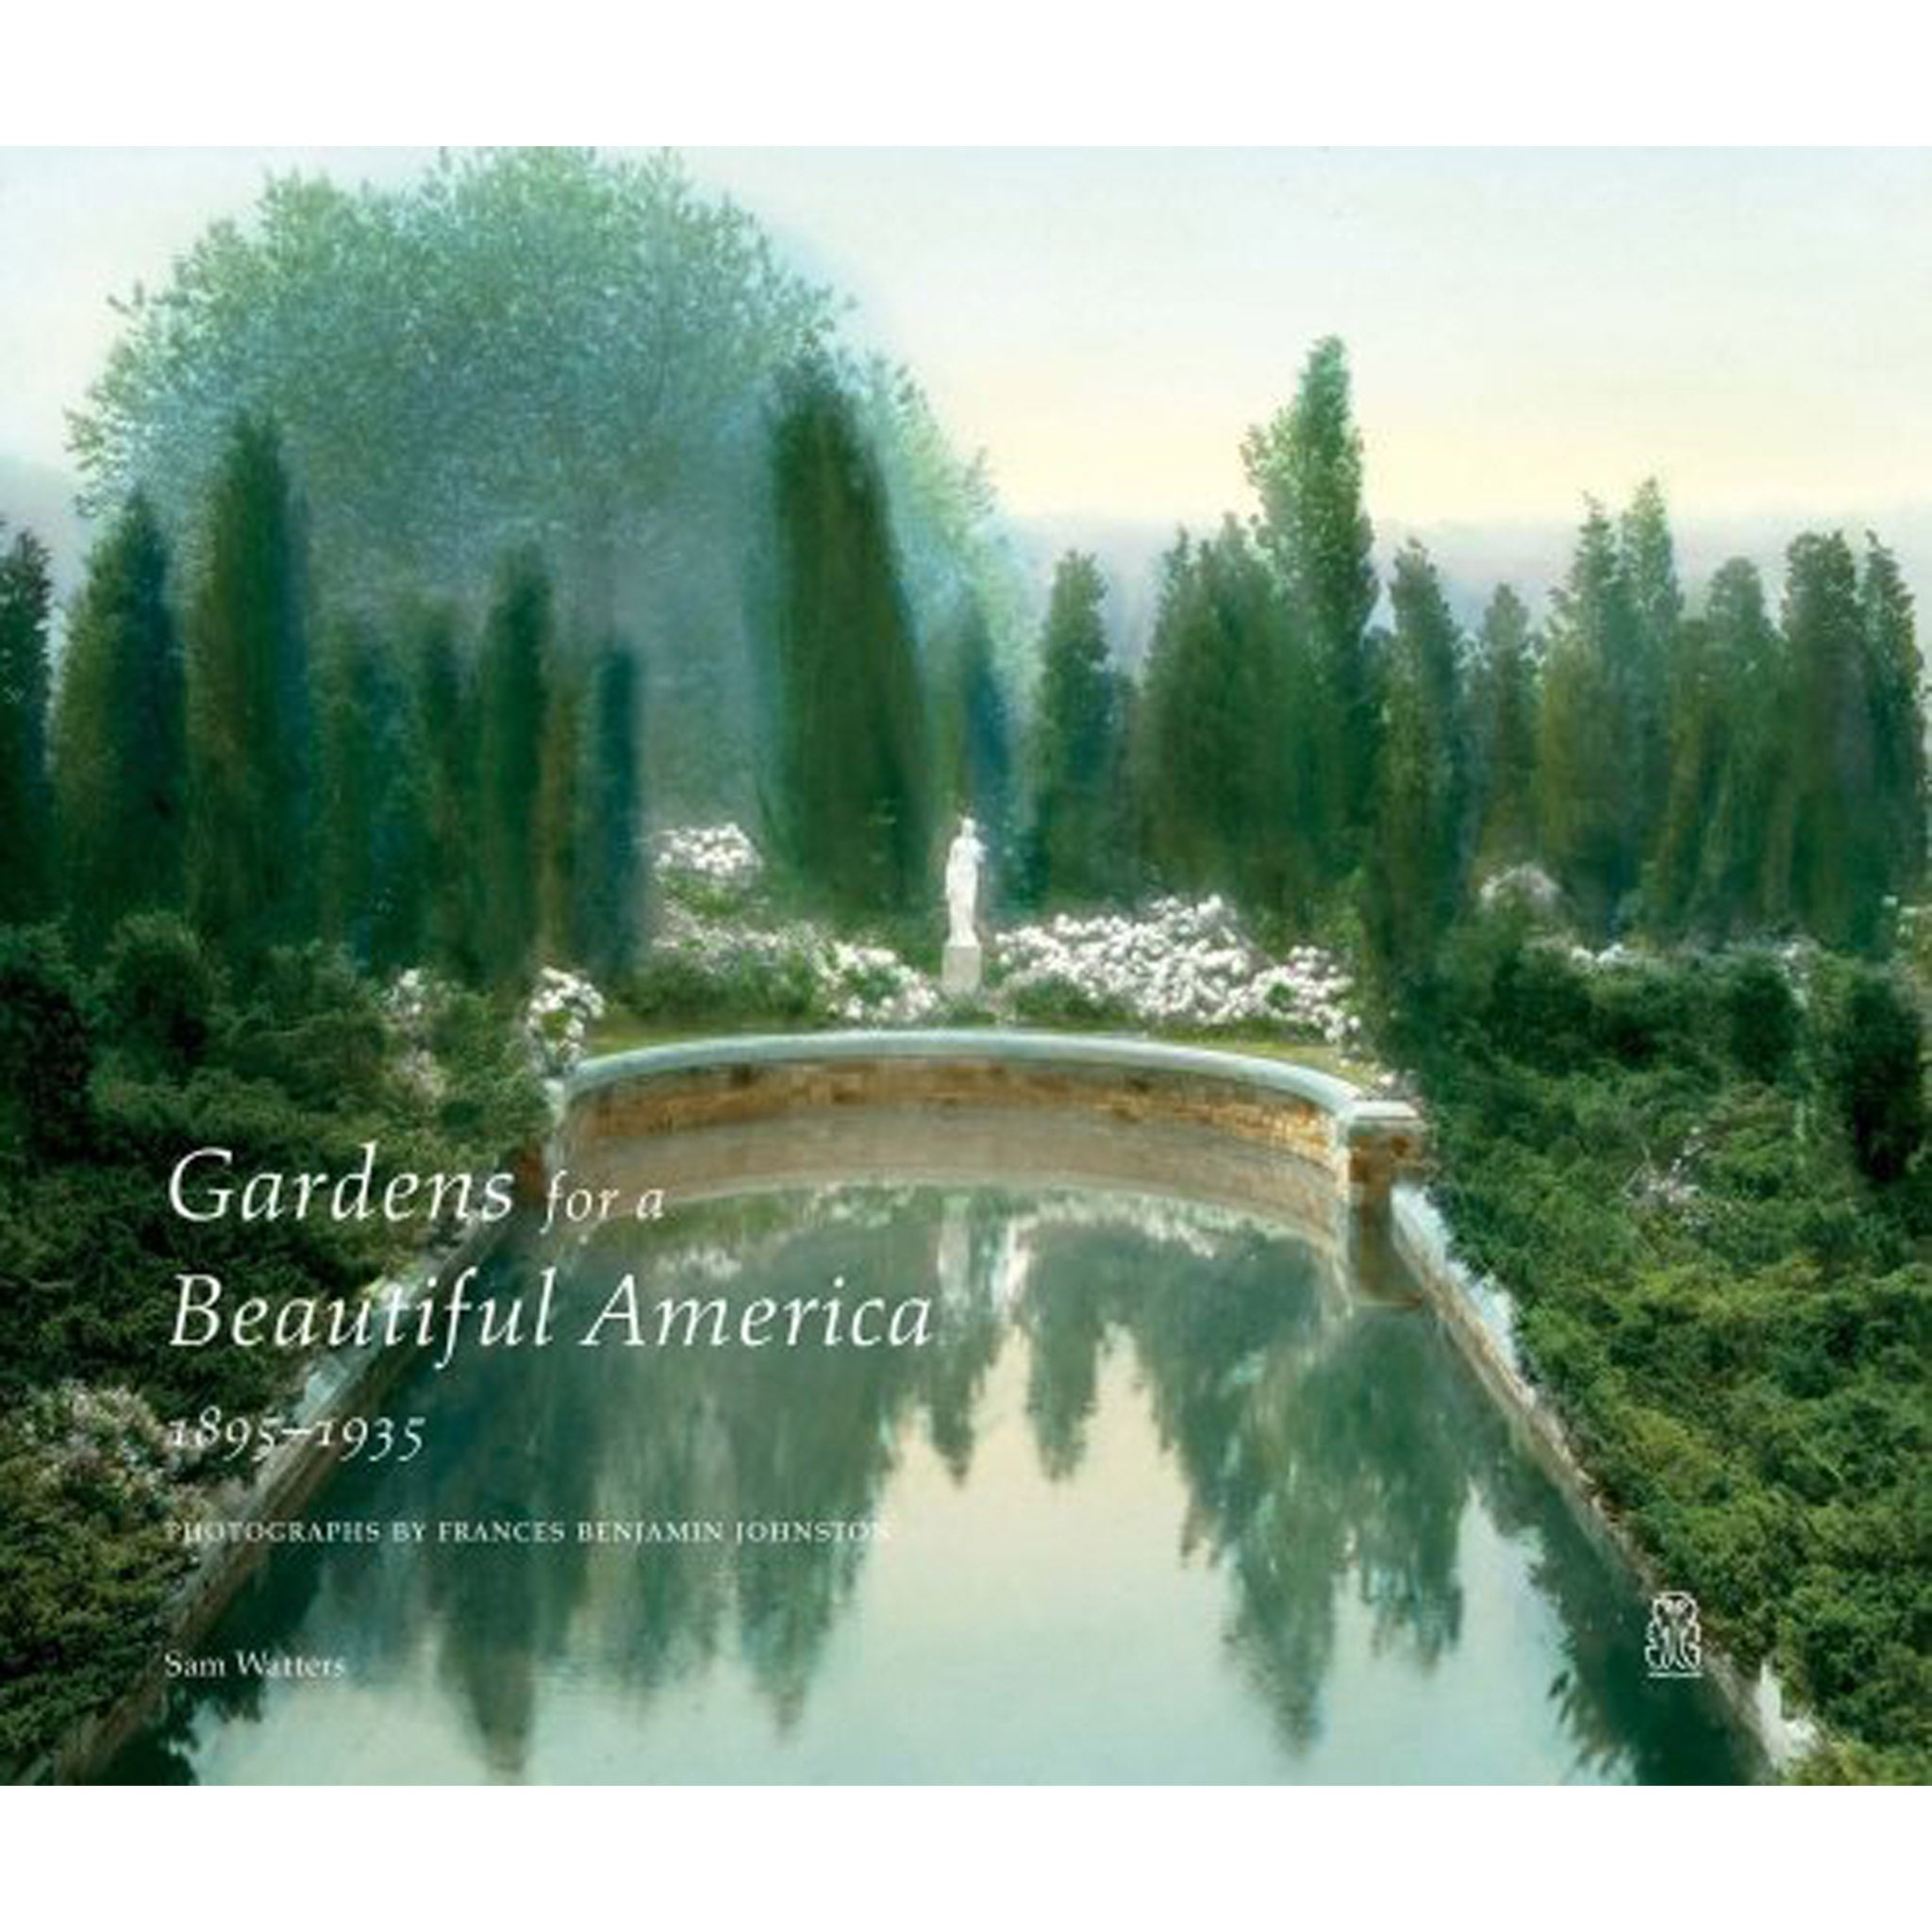 Gardens for a Beautiful America